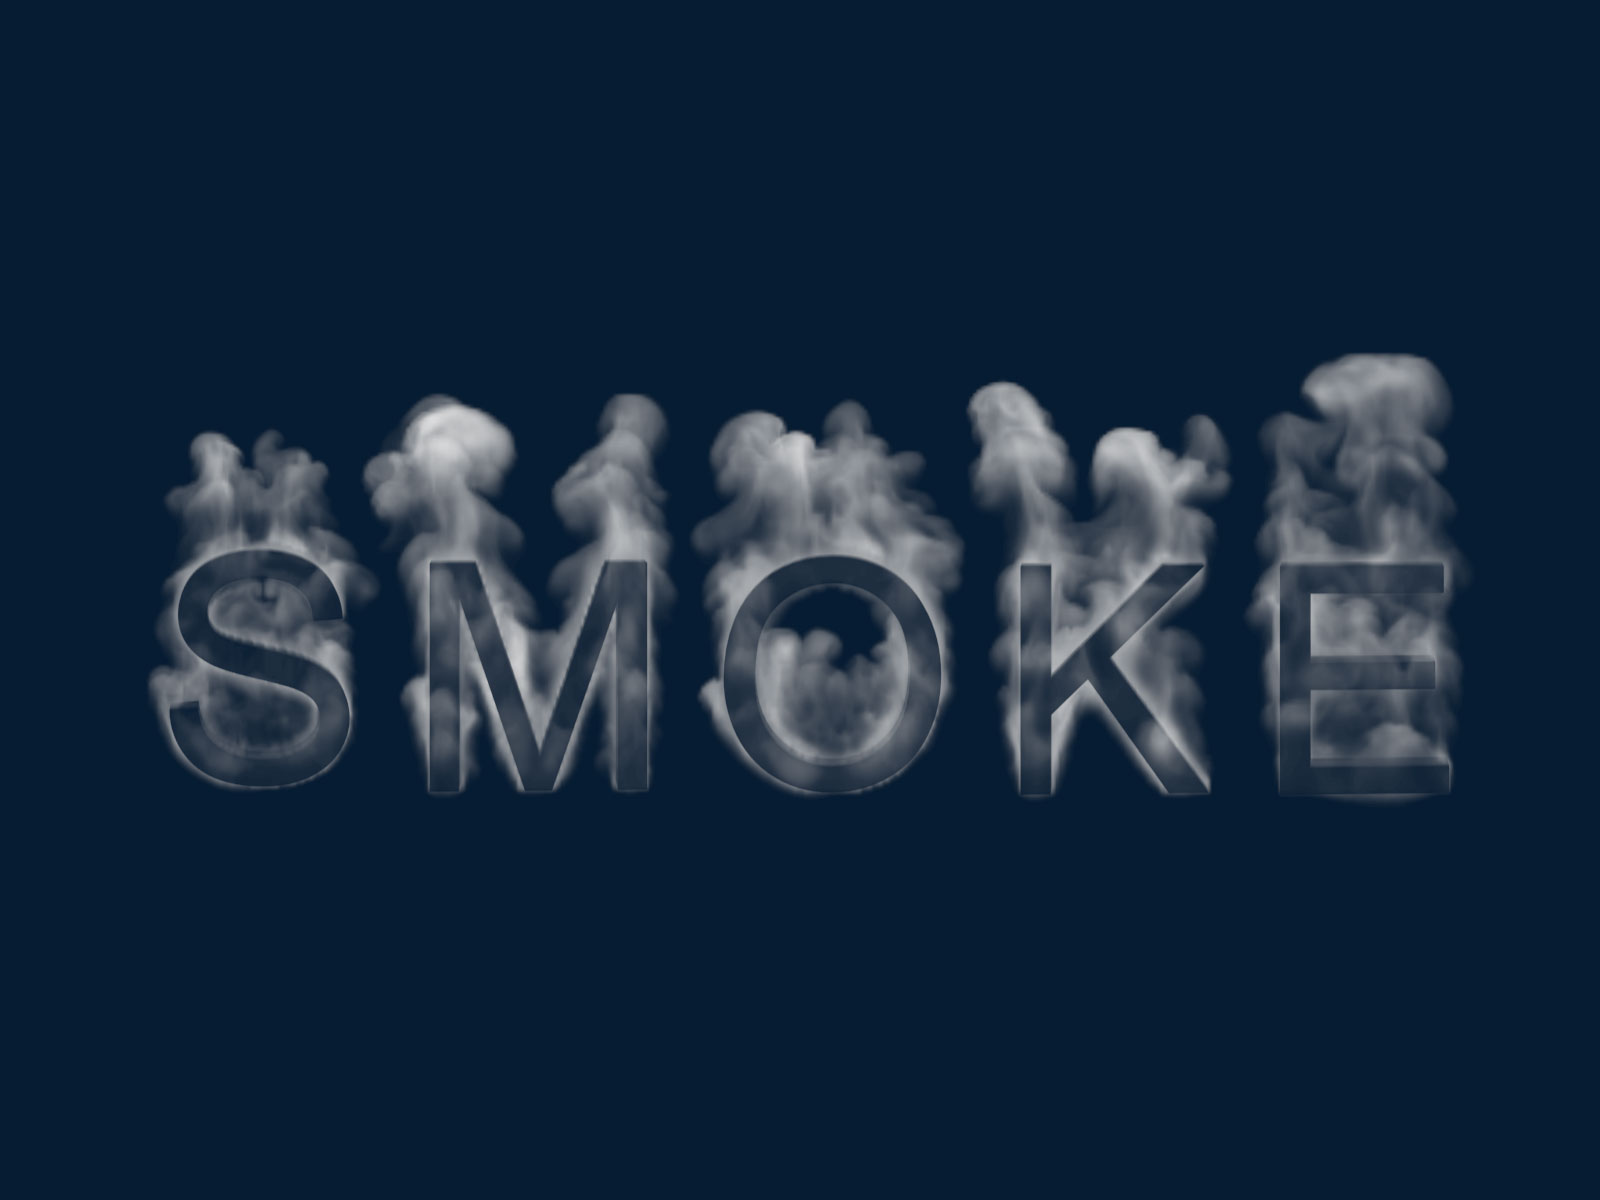 Photoshop PSD Smoke Alphabet Brushes ABR